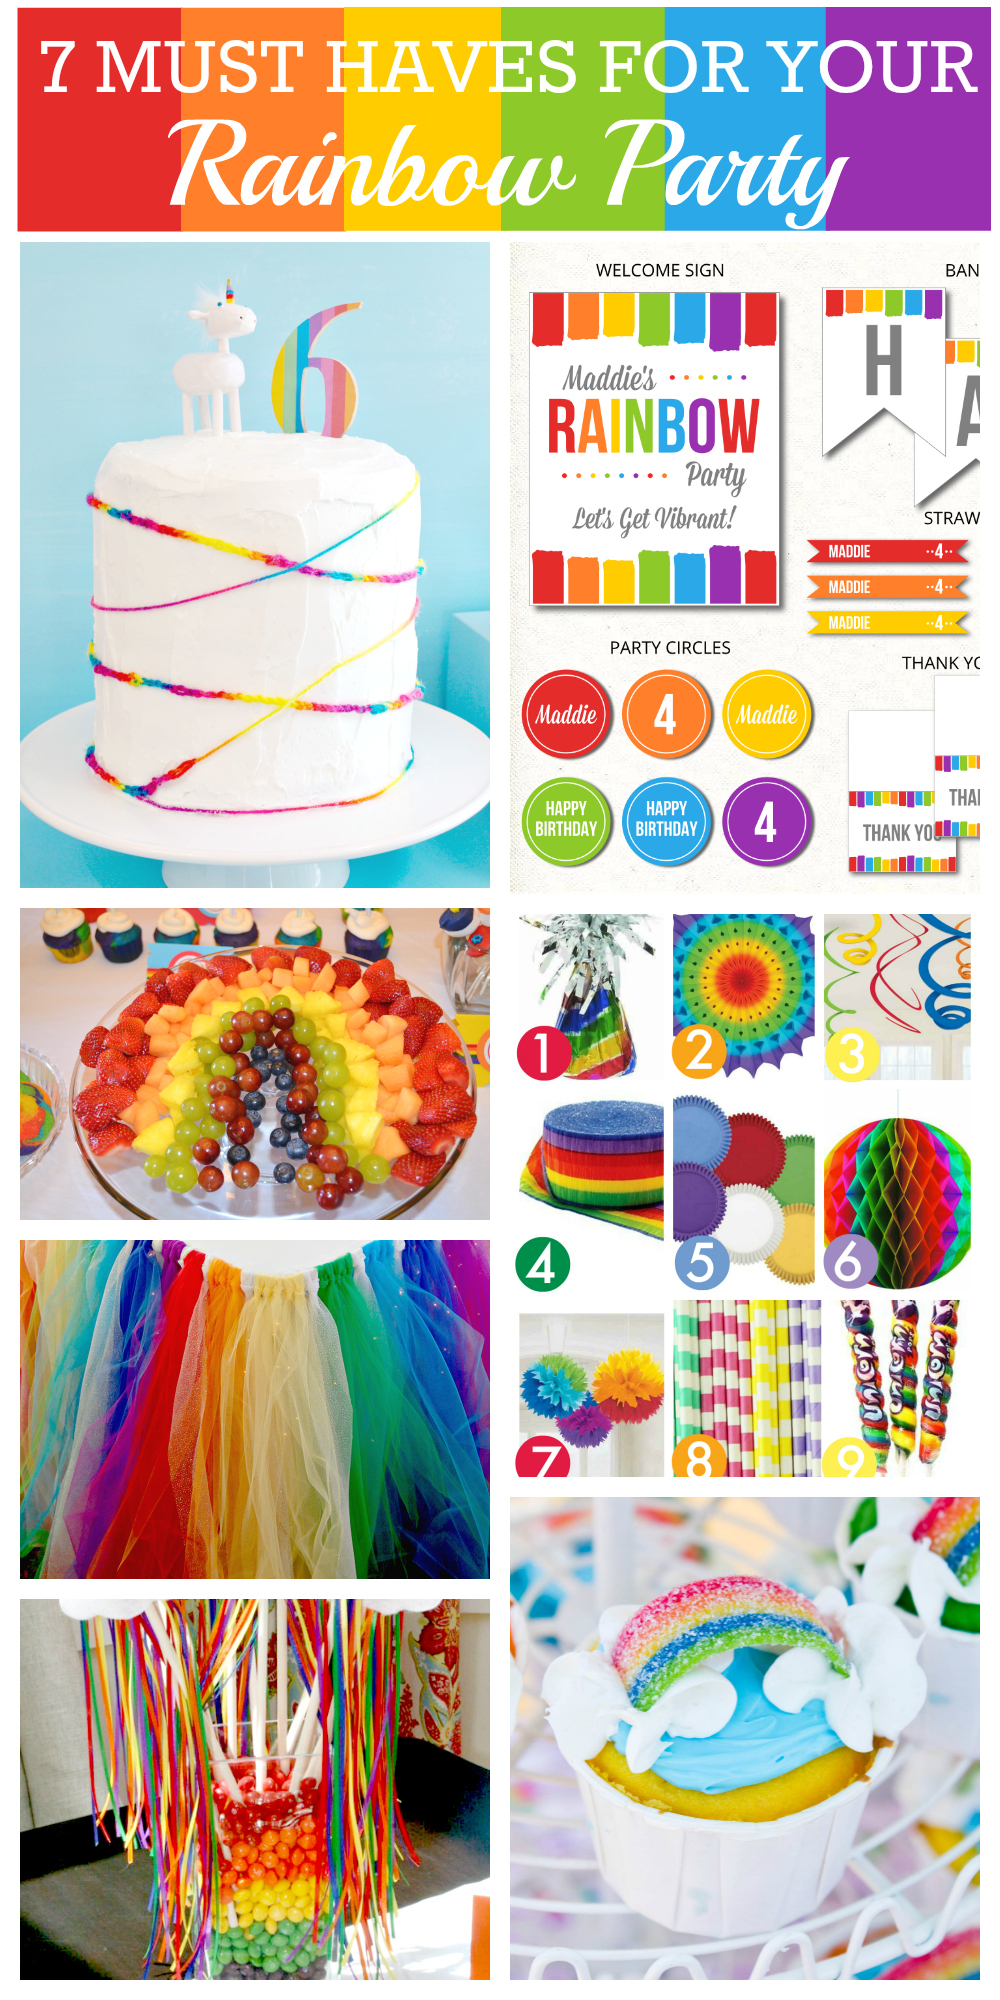 7 Things You Must Have at Your Rainbow Party | Catch My Party